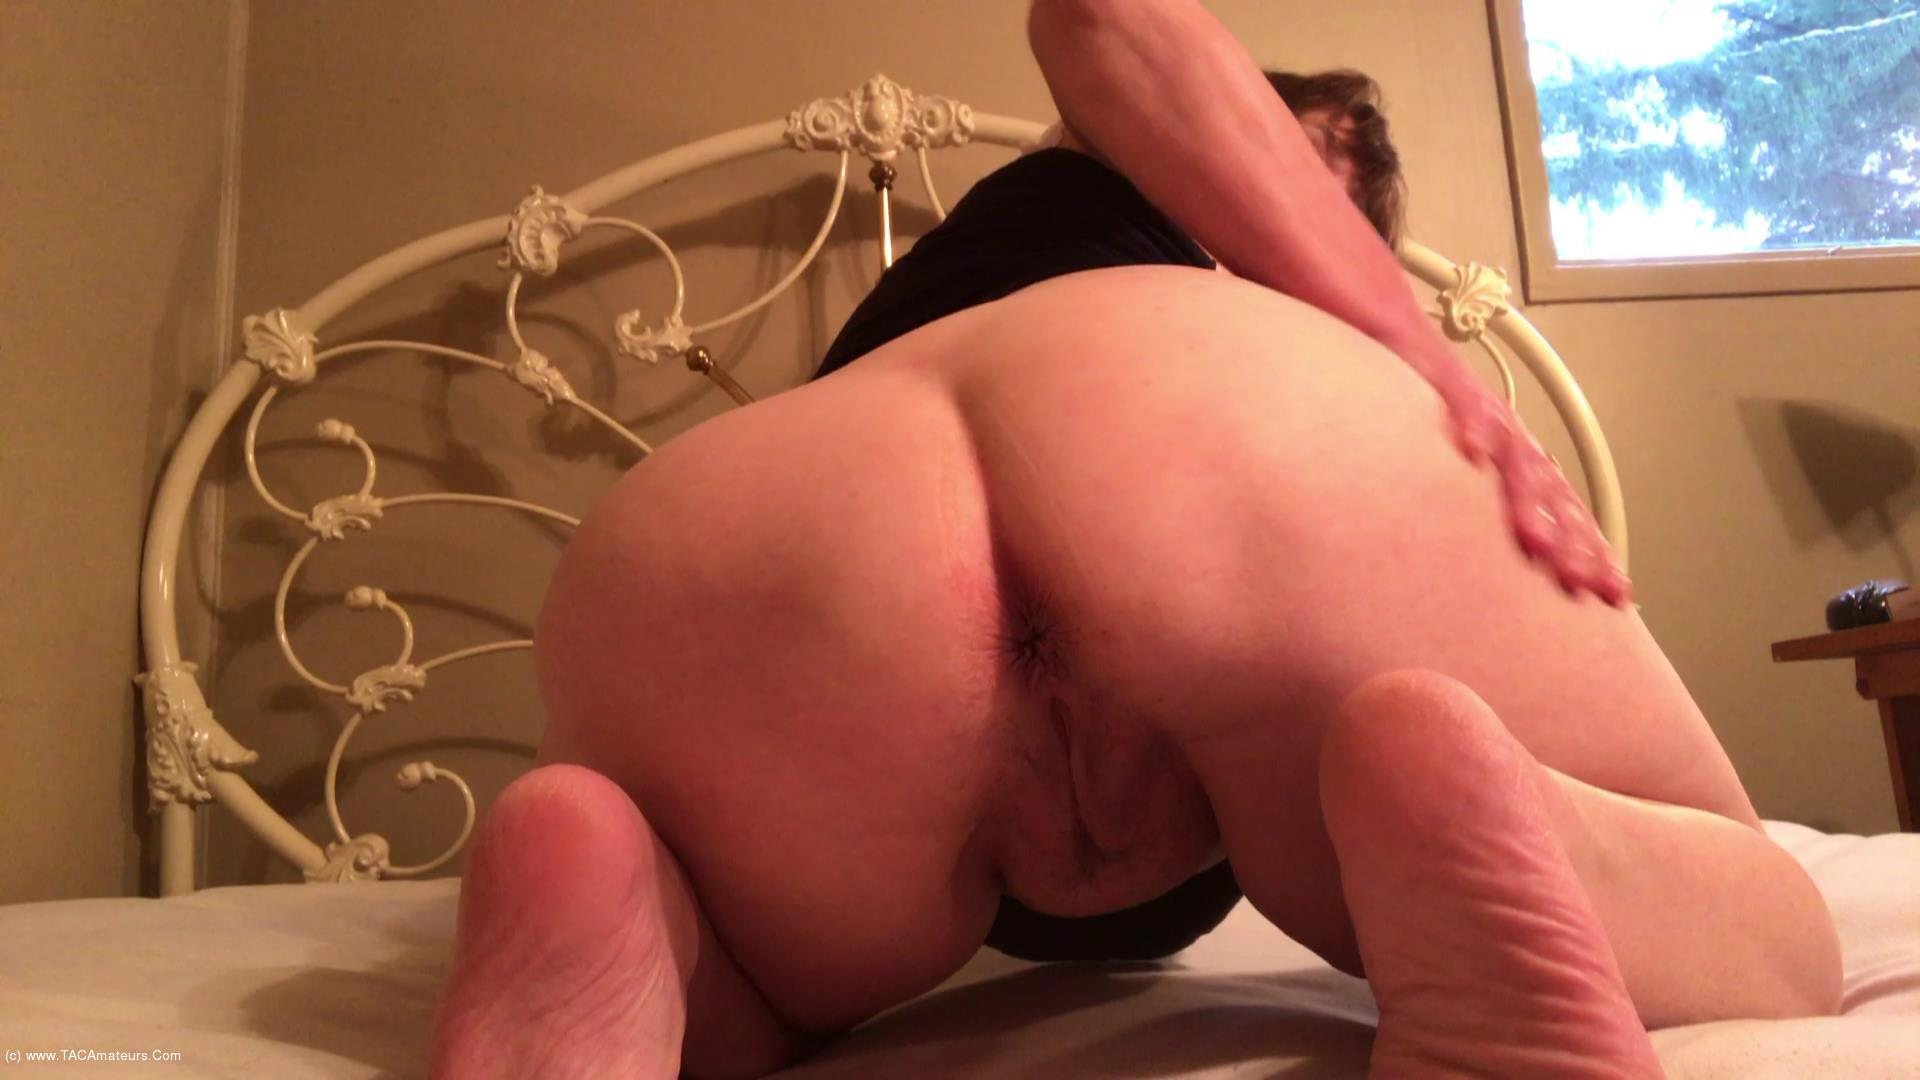 CougarBabeJolee - My Arse Needs Worshipping scene 2